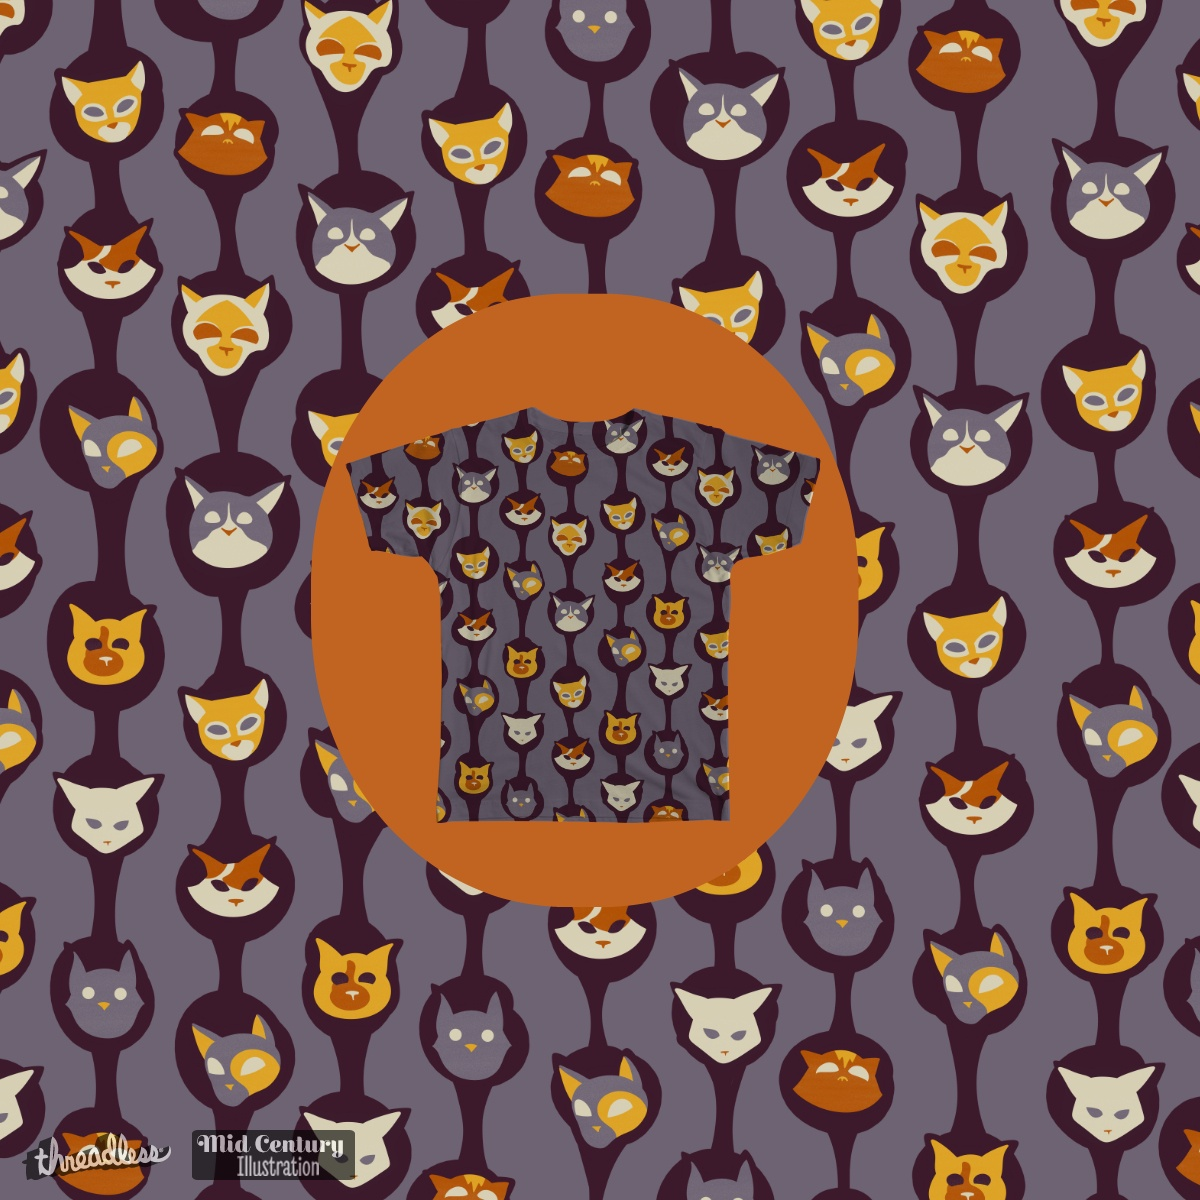 Cool Cats, a cool t-shirt design